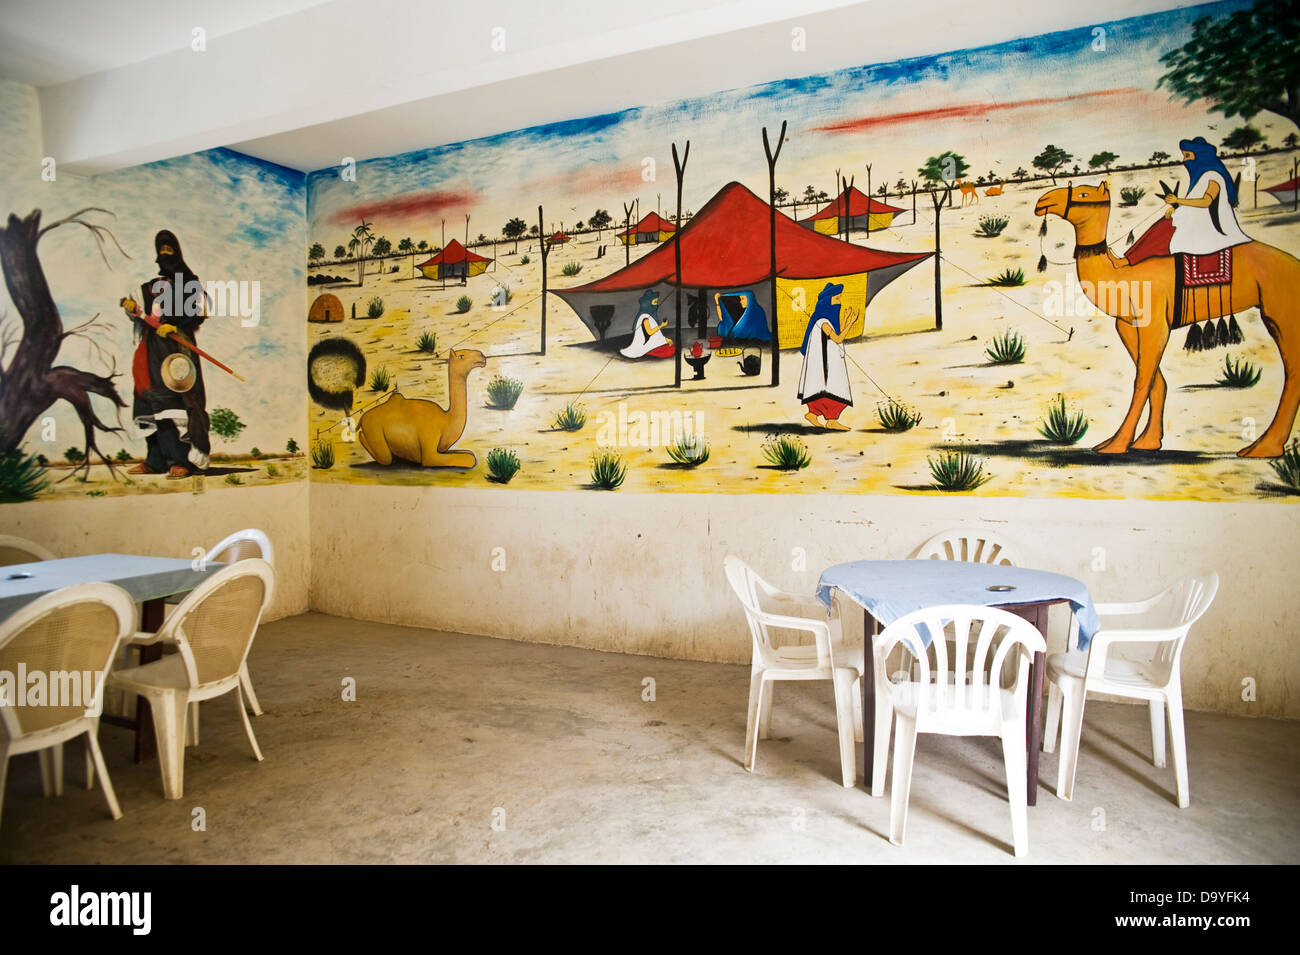 Mural of camels and Touareg tents on wall of café, Timbuktu, Mali ...